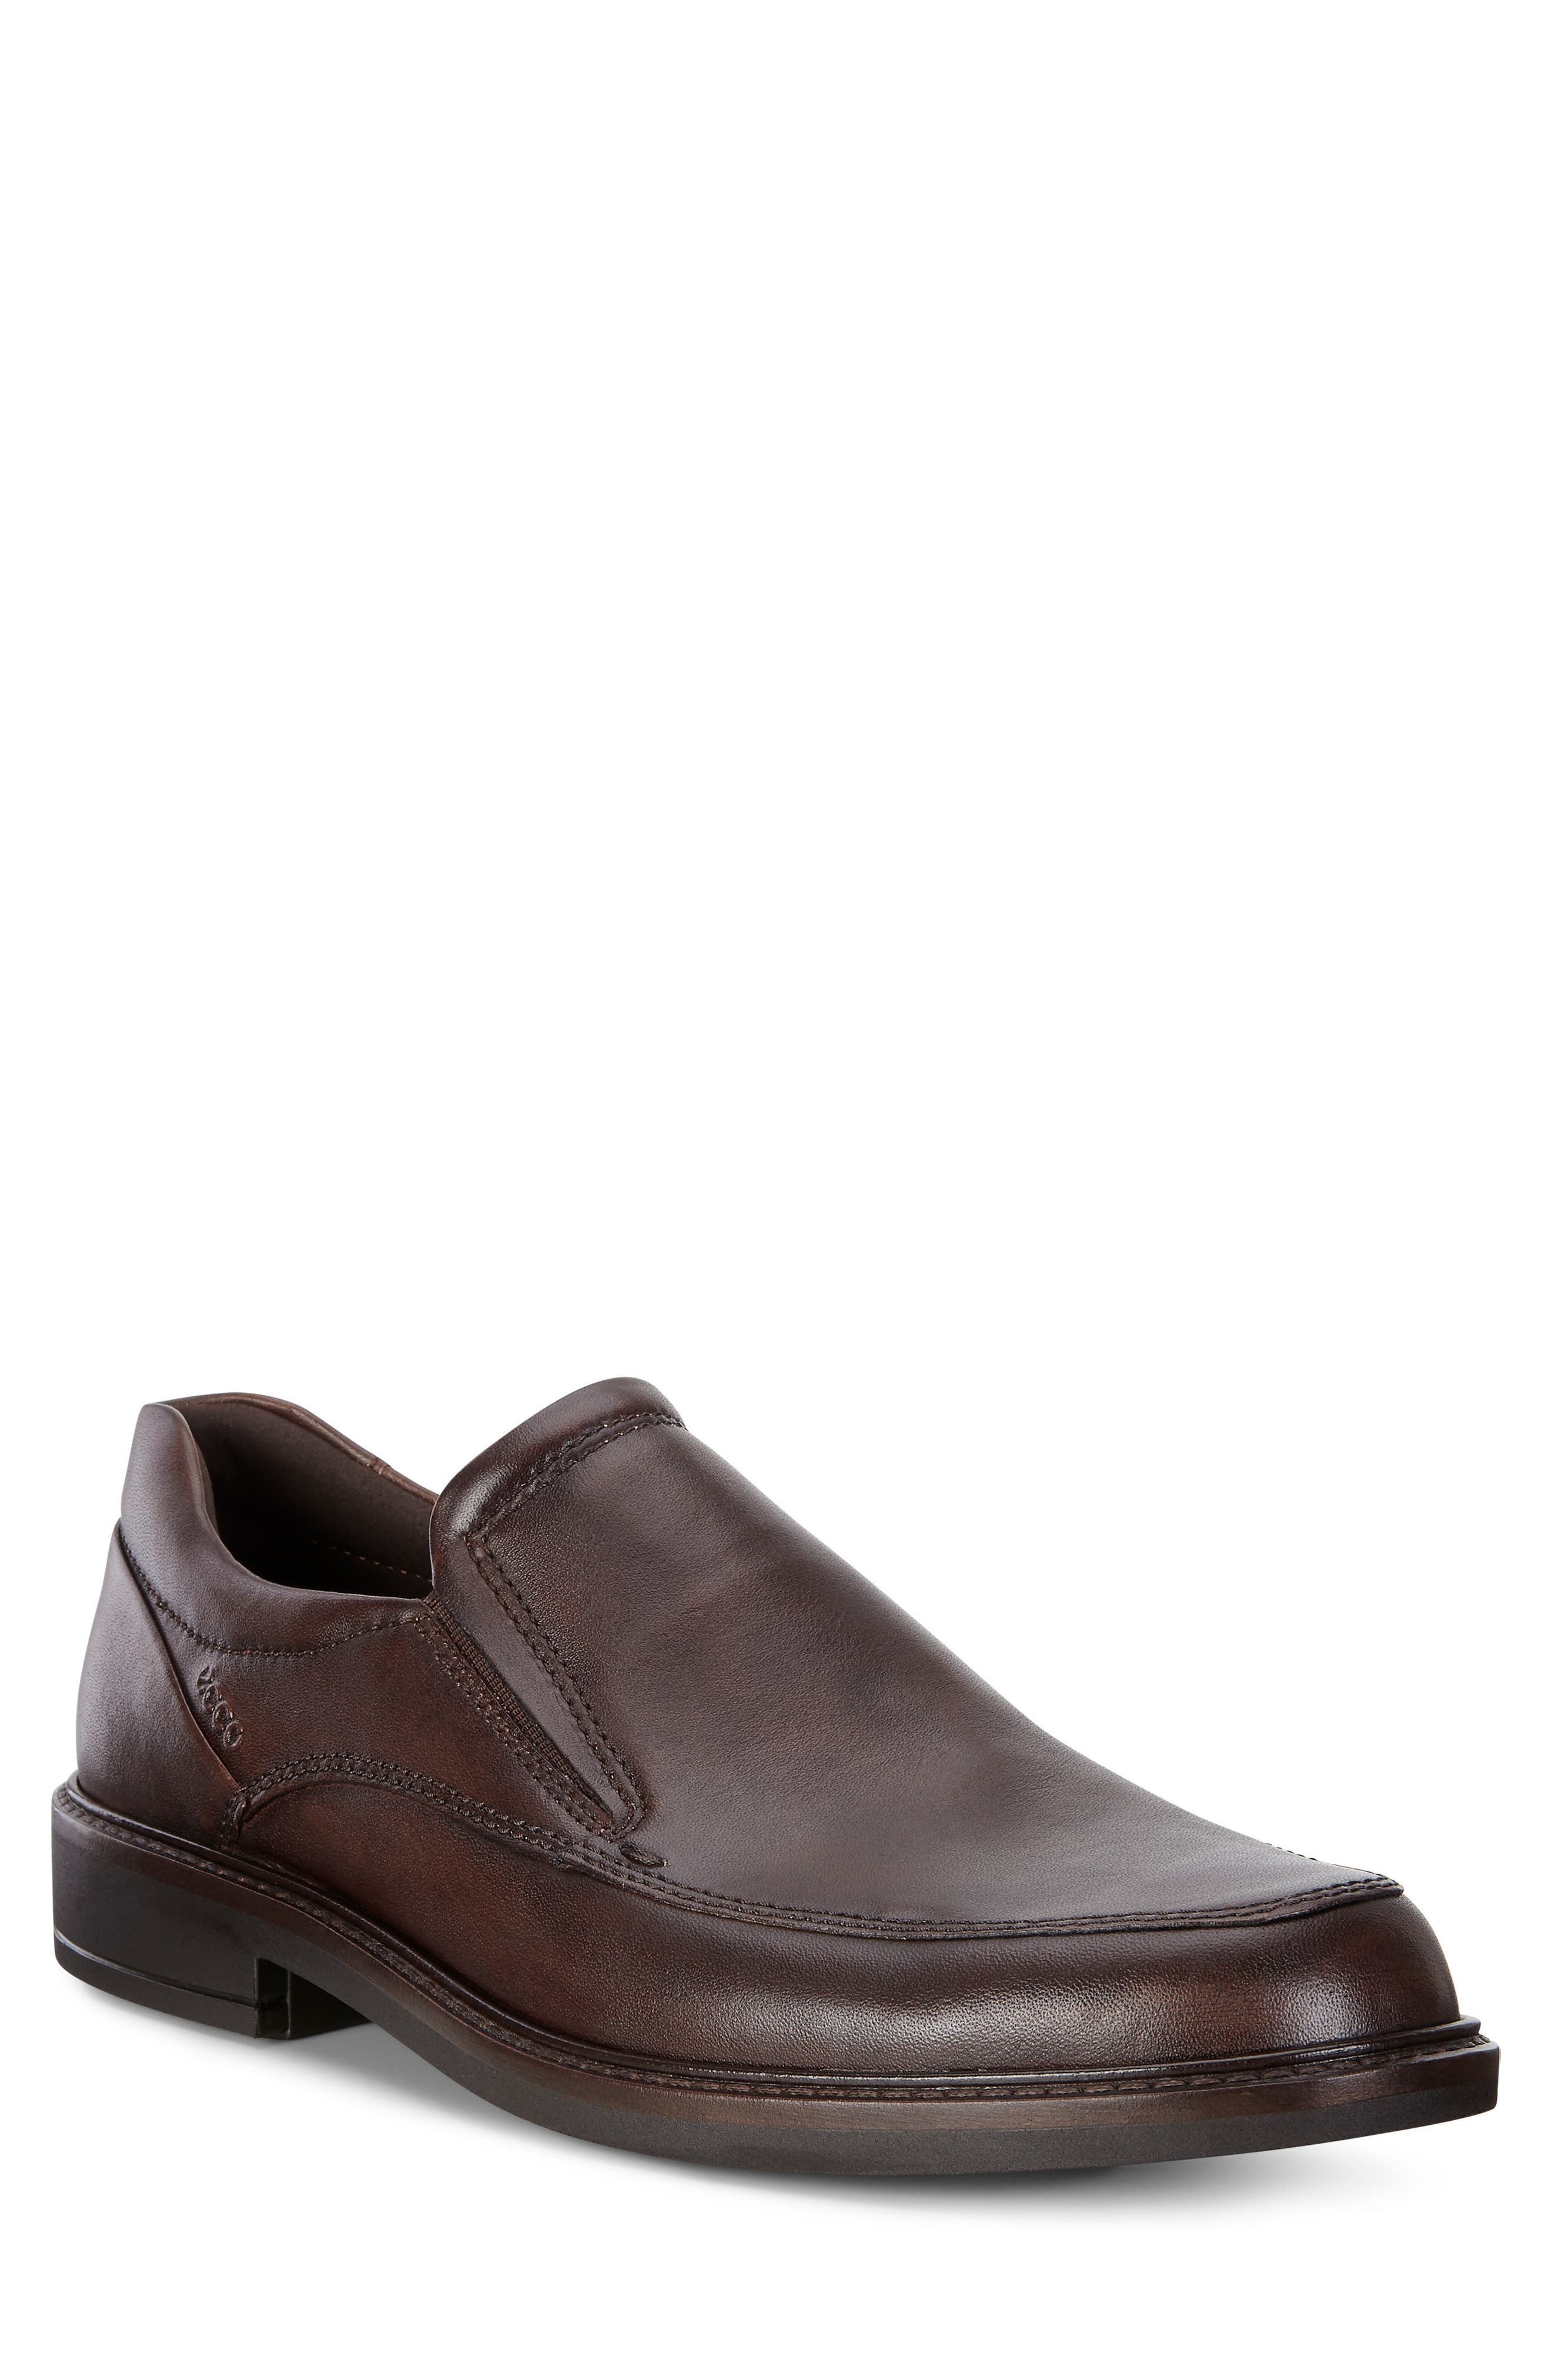 ECCO, Holton Slip-On, Main thumbnail 1, color, BROWN LEATHER